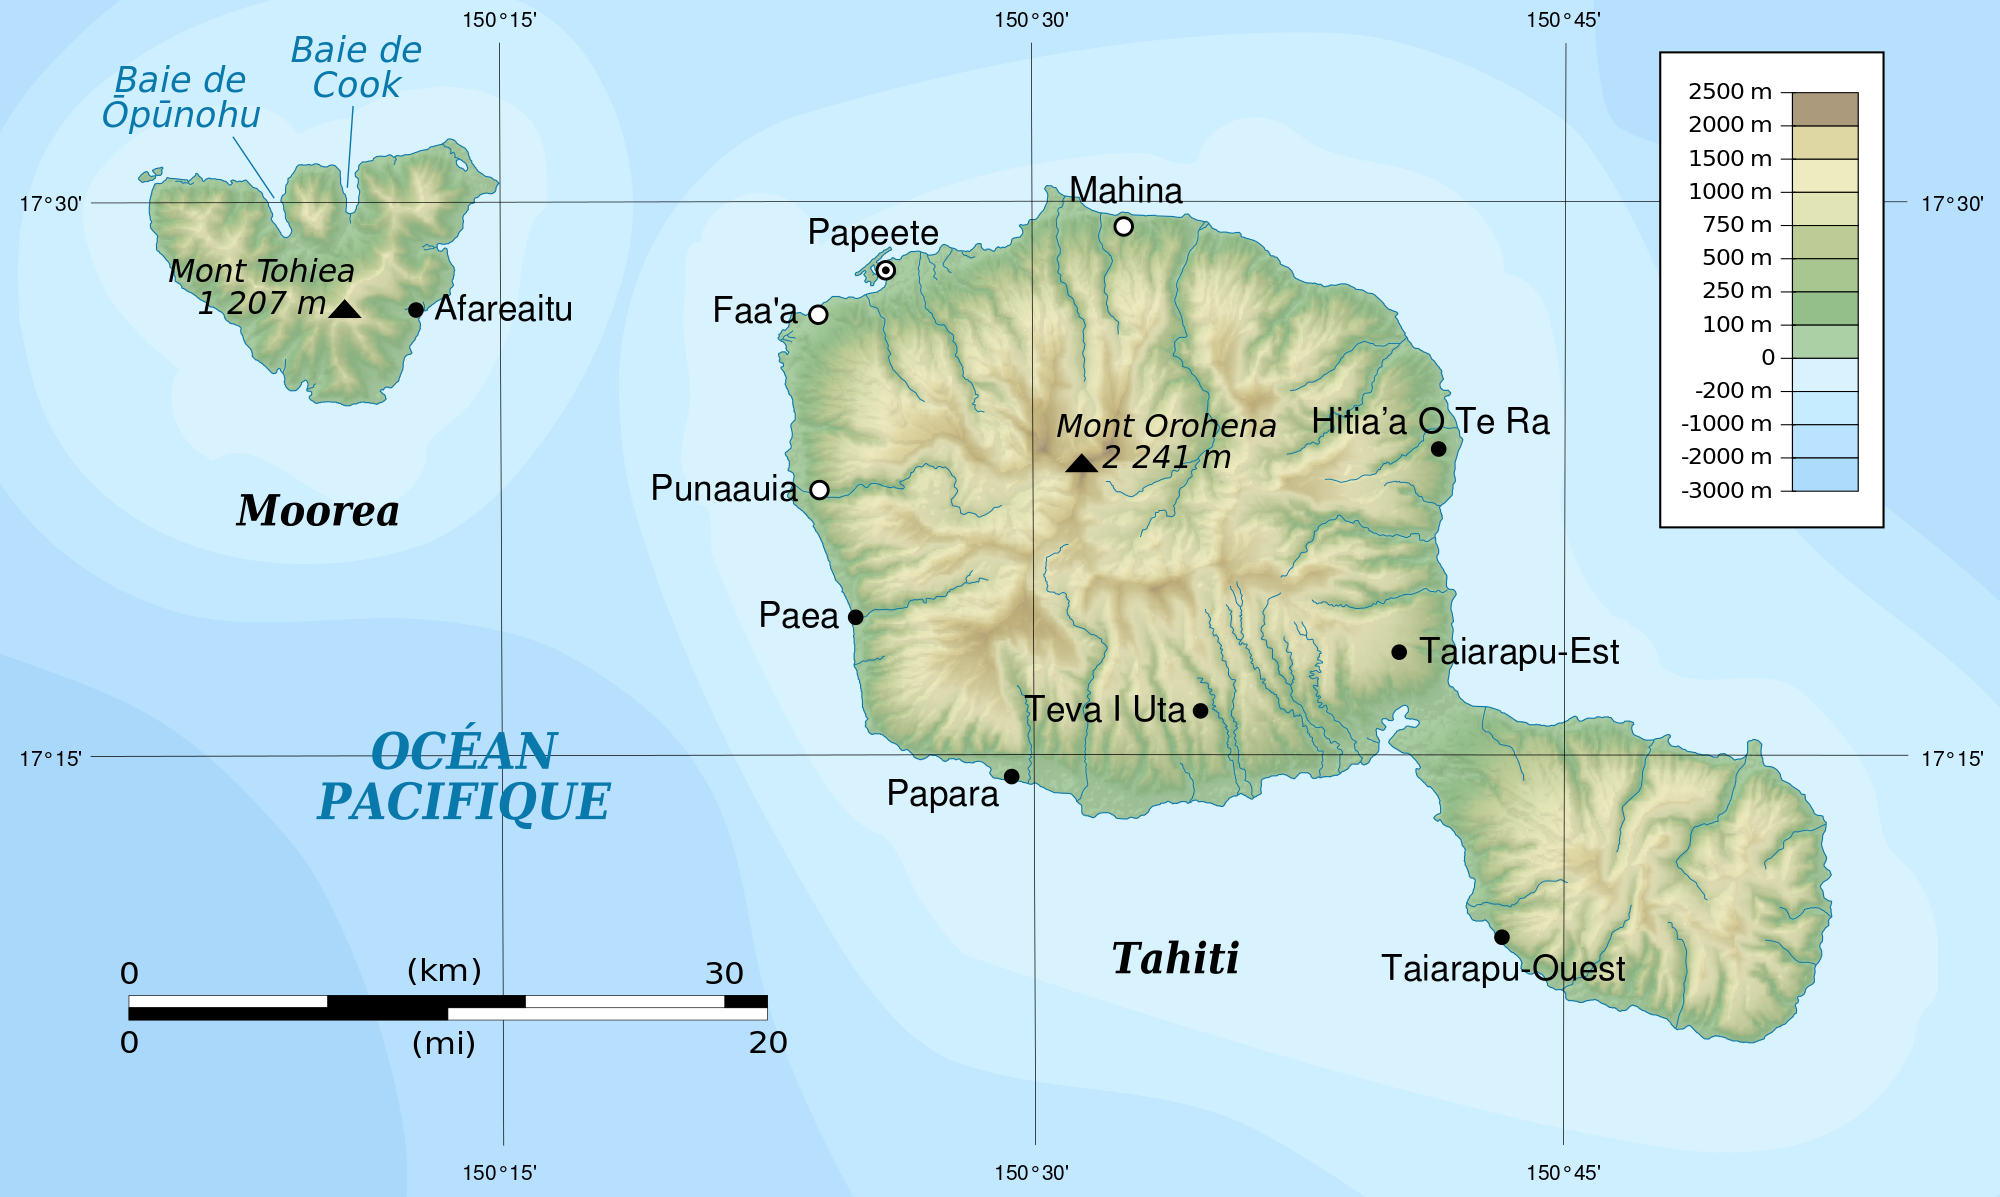 Map Of Tahiti and Moorea in French Polynesia | Pacific Ocean ... Physical Map Of Tahiti on tourist map of tahiti, economy of tahiti, physical features of tahiti, outline map of tahiti, geography of tahiti, 3d map of tahiti, satellite map of tahiti, topographical map of tahiti, 2d map of tahiti, road map of tahiti, national flower of tahiti, map of fiji and tahiti, world map of tahiti, longitude of tahiti, linguistic map of tahiti, latitude of tahiti, relative location of tahiti, topographic map of tahiti, absolute location of tahiti, blank map of tahiti,